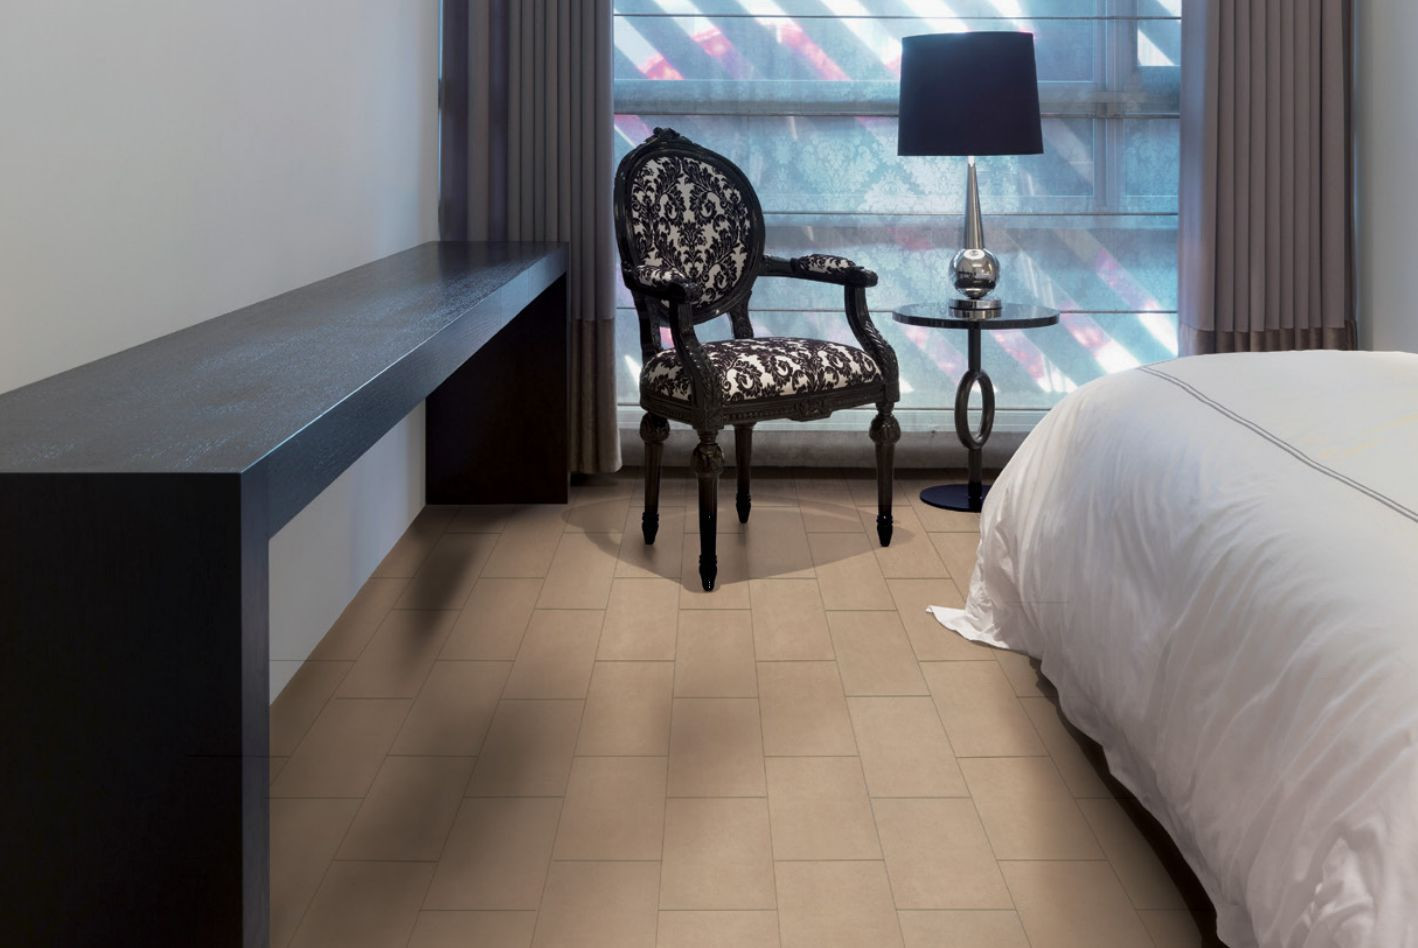 hardwood floor with tile border of tile solutions for great bedroom floors pertaining to 12 x 24 infinite brown bedroom tile 56a4a0e65f9b58b7d0d7e4f6 jpg